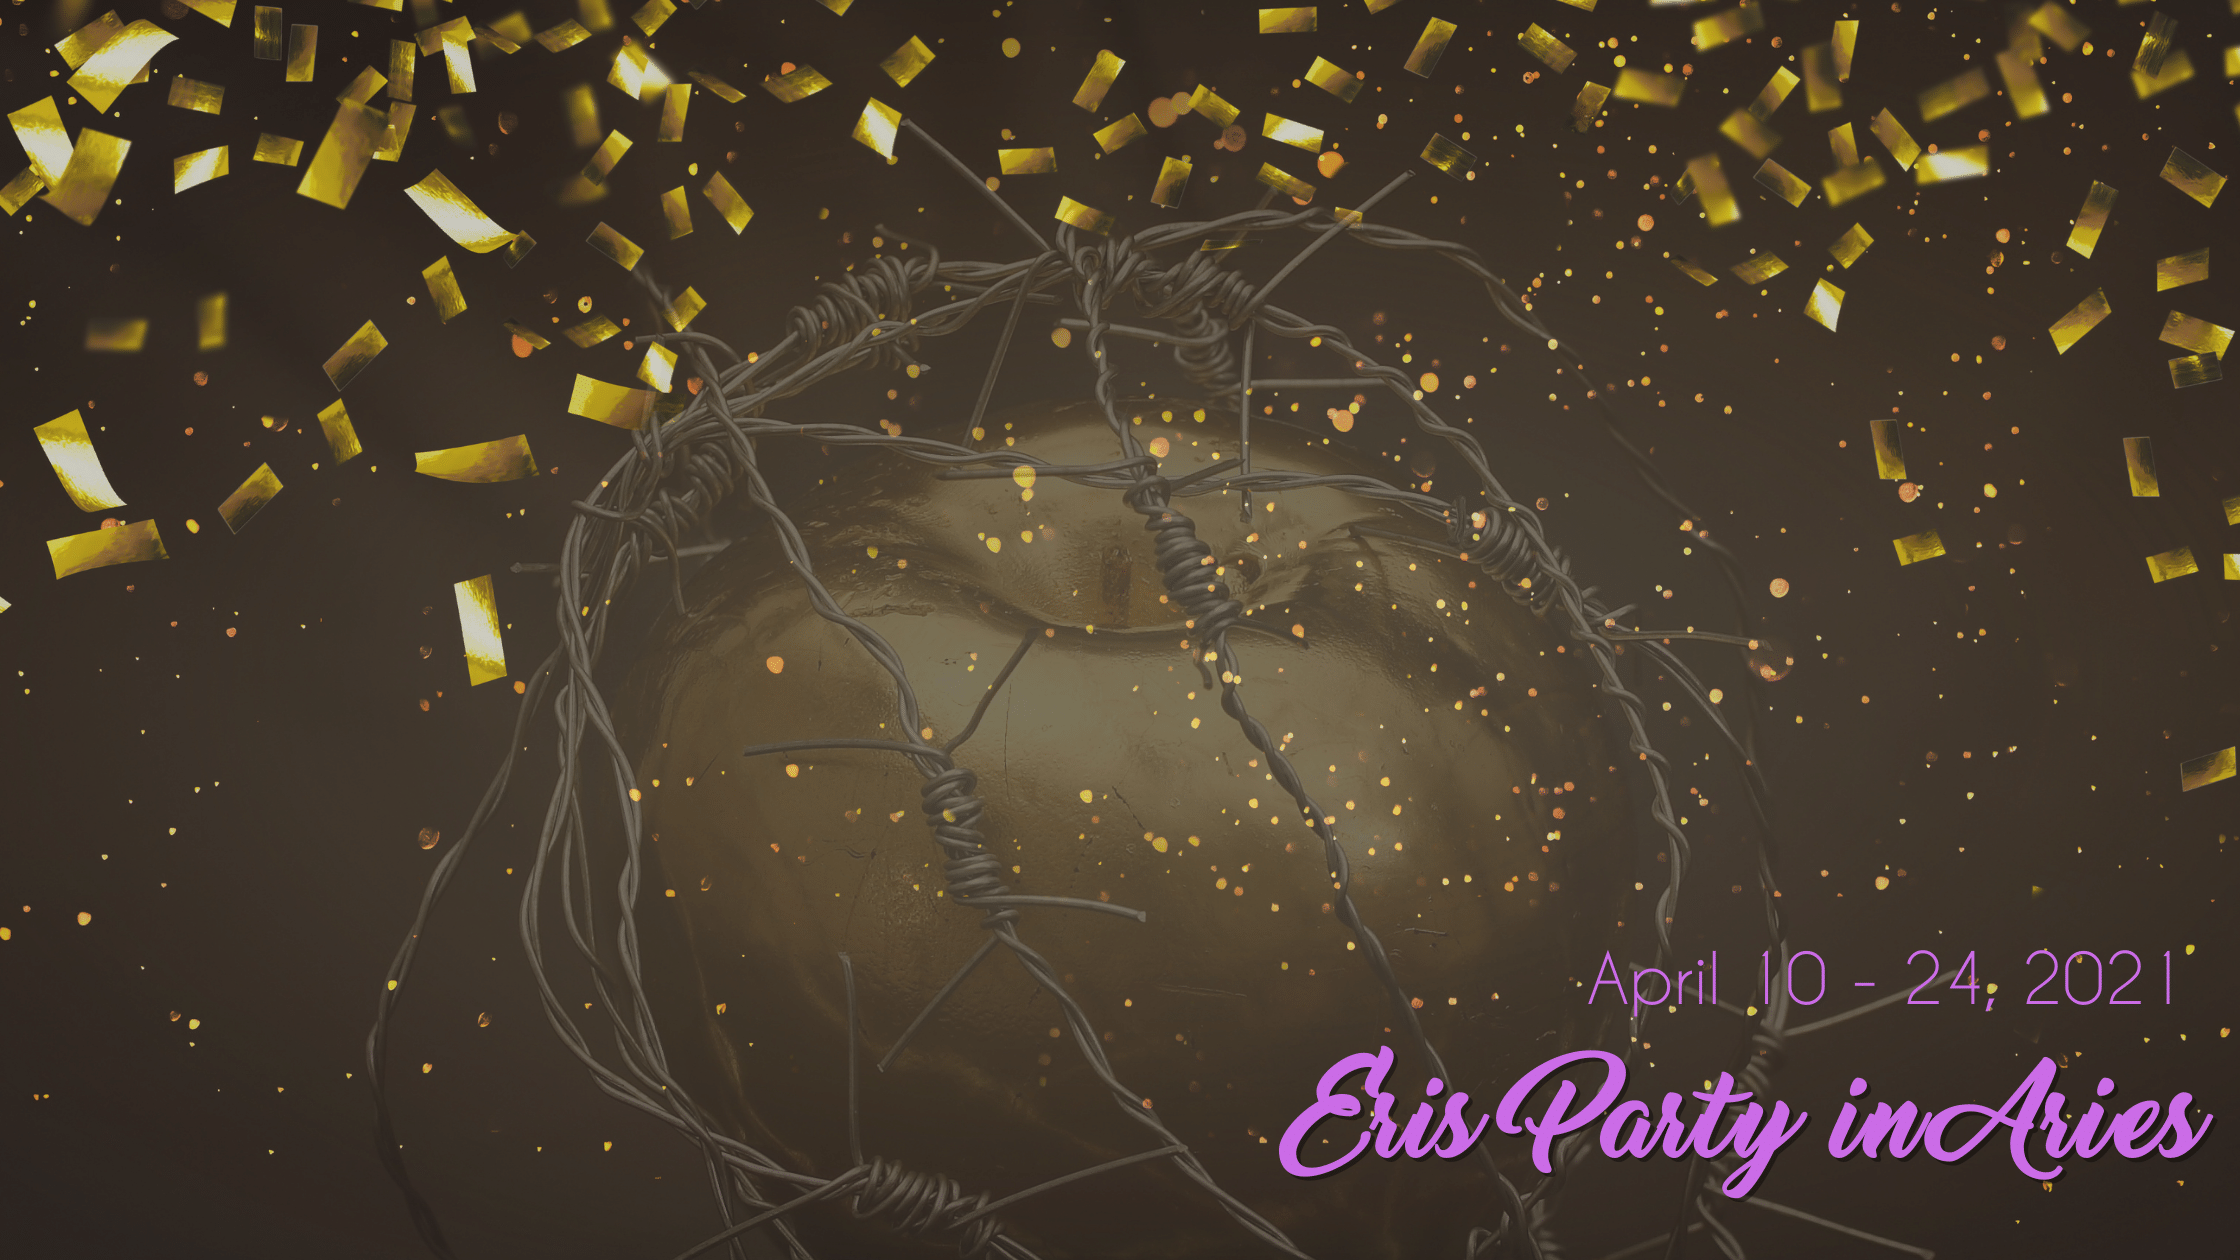 Eris Party in Aries